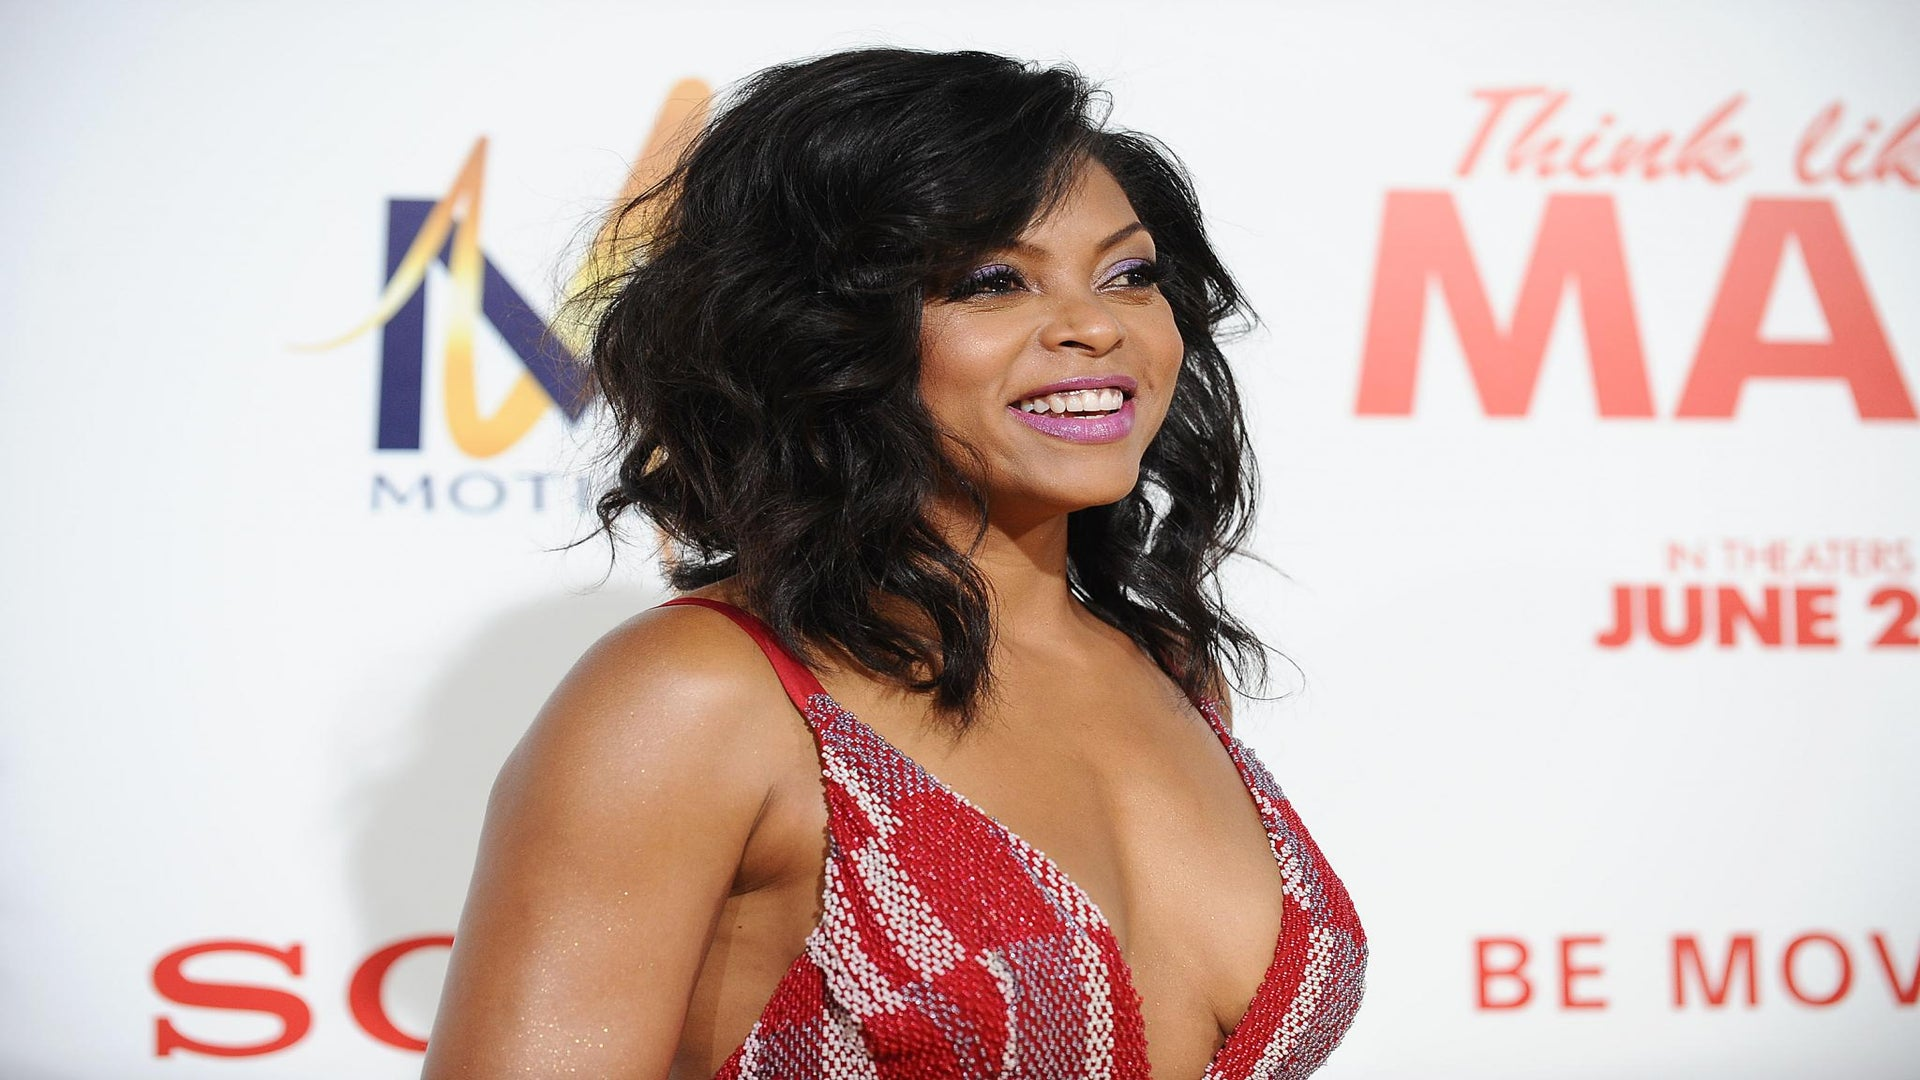 Get The Look: Taraji P. Henson at The 'Think Like A Man Too' Premiere